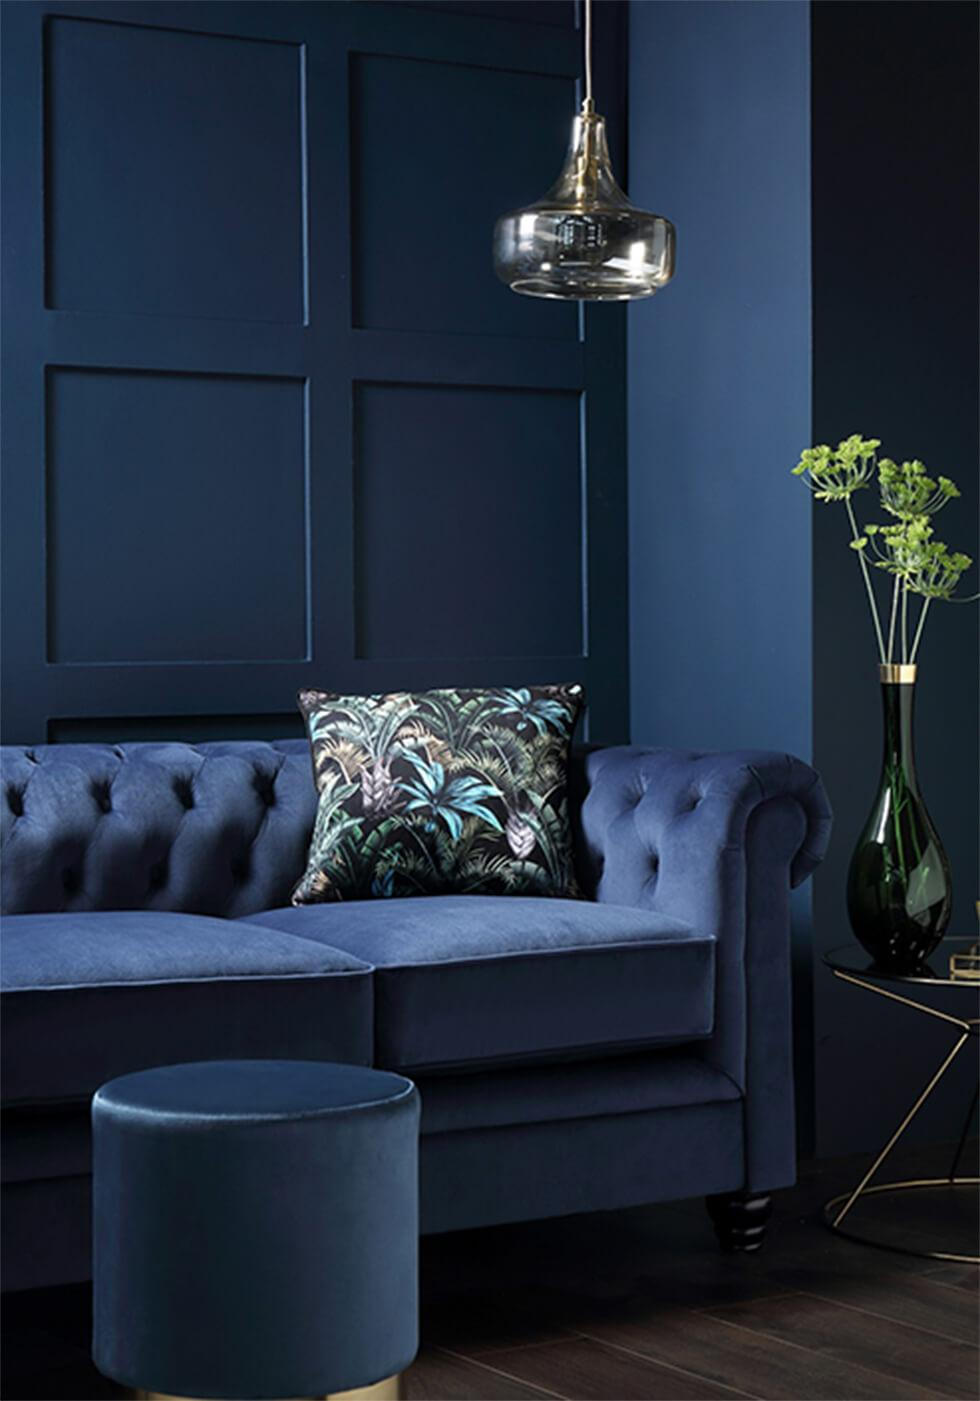 Furniture Choice Hampton blue velvet Chesterfield sofa in a classic blue room